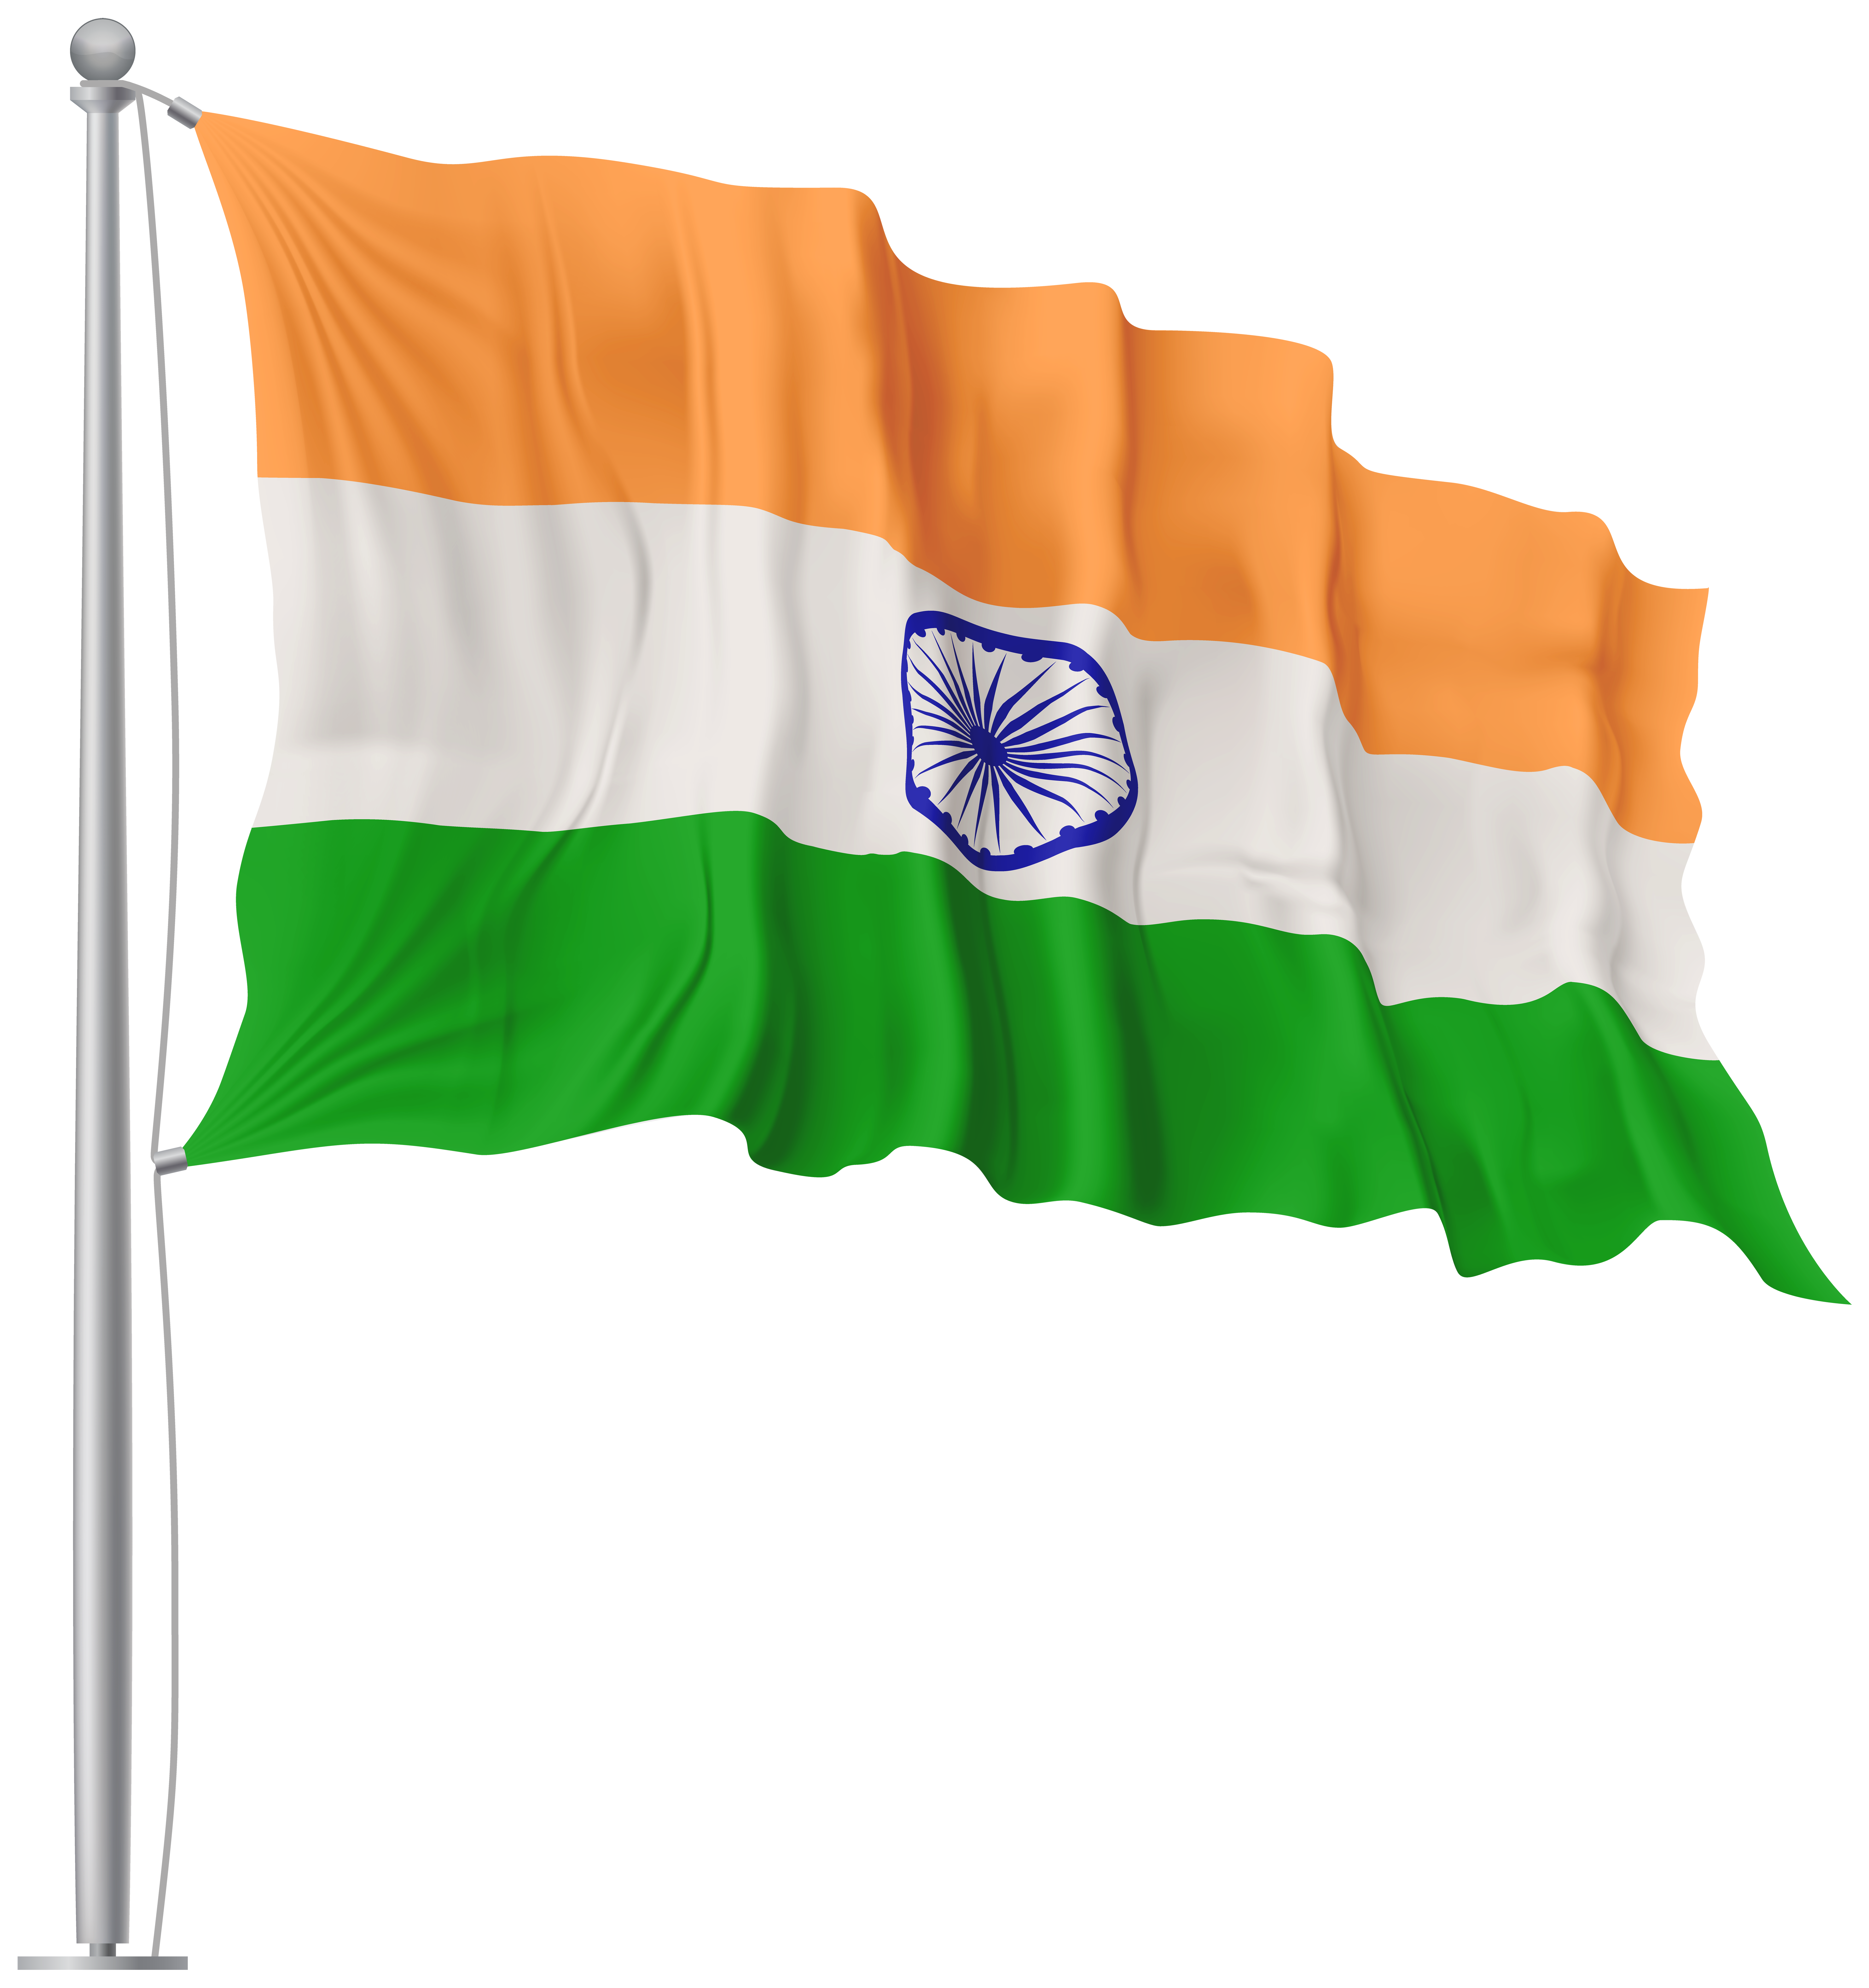 Banner flags png. India waving flag image